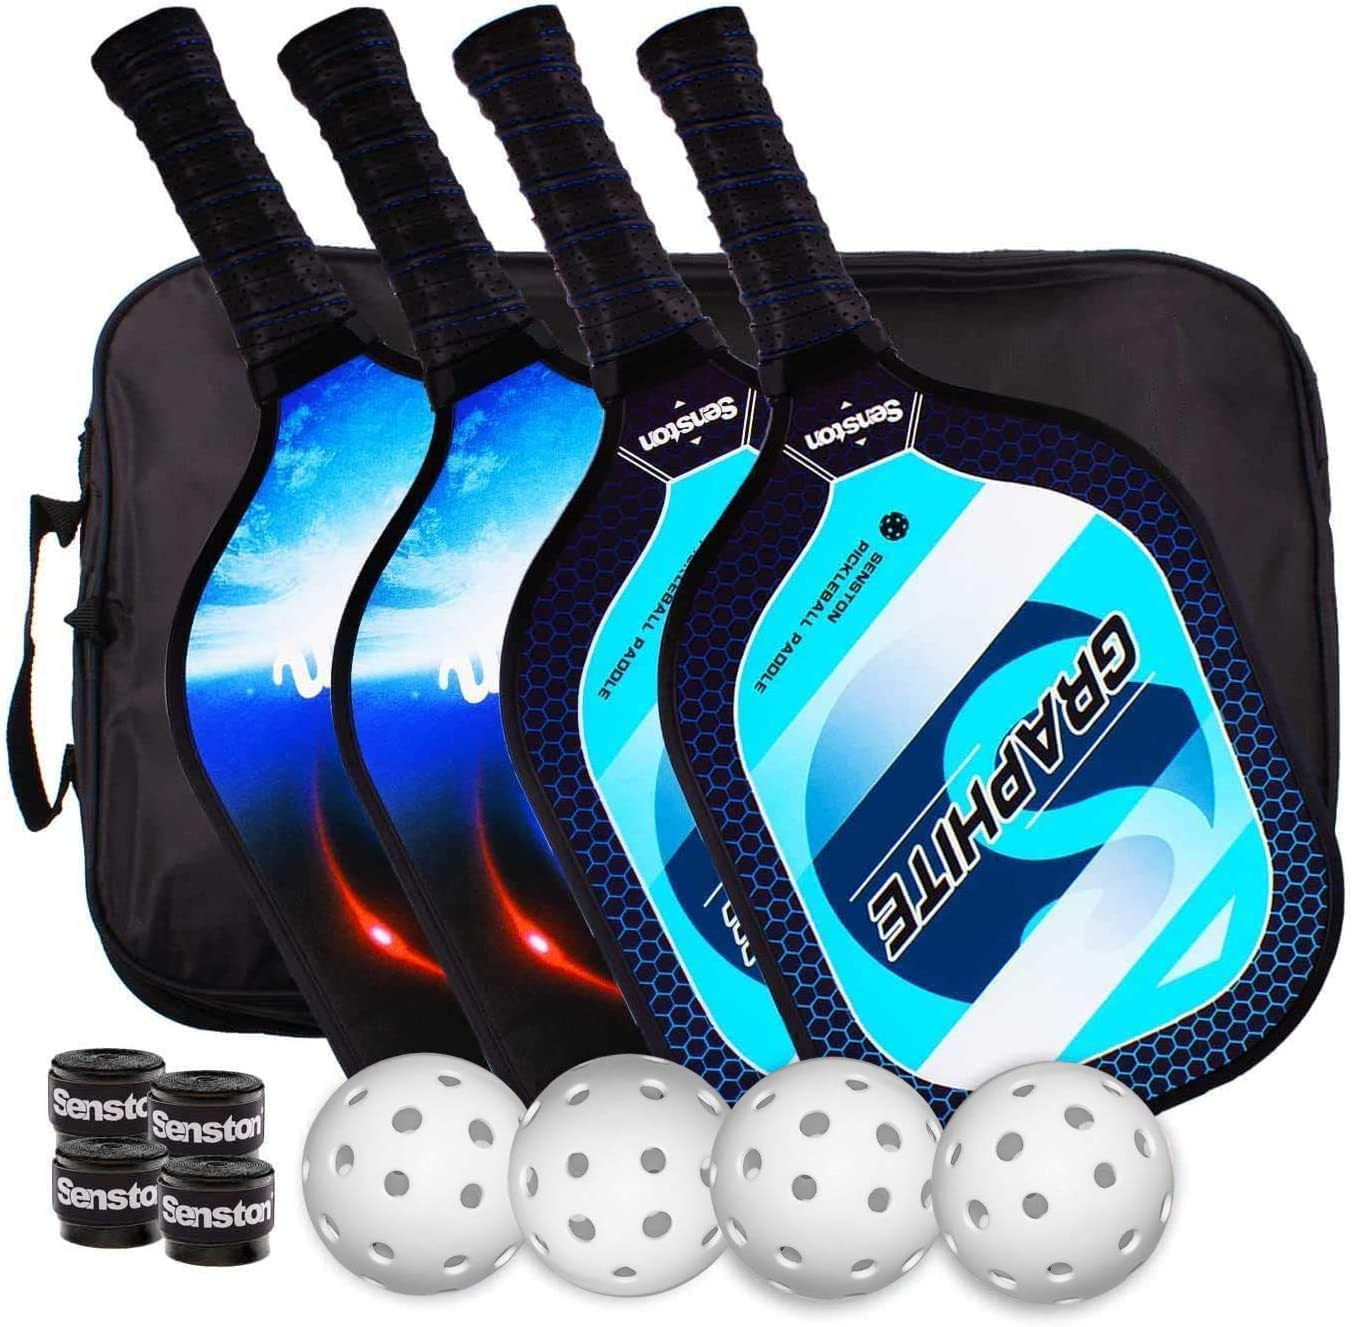 Professional Pickleball Set 2-Player Carbon Fiber Paddle Racquets 4 Ball